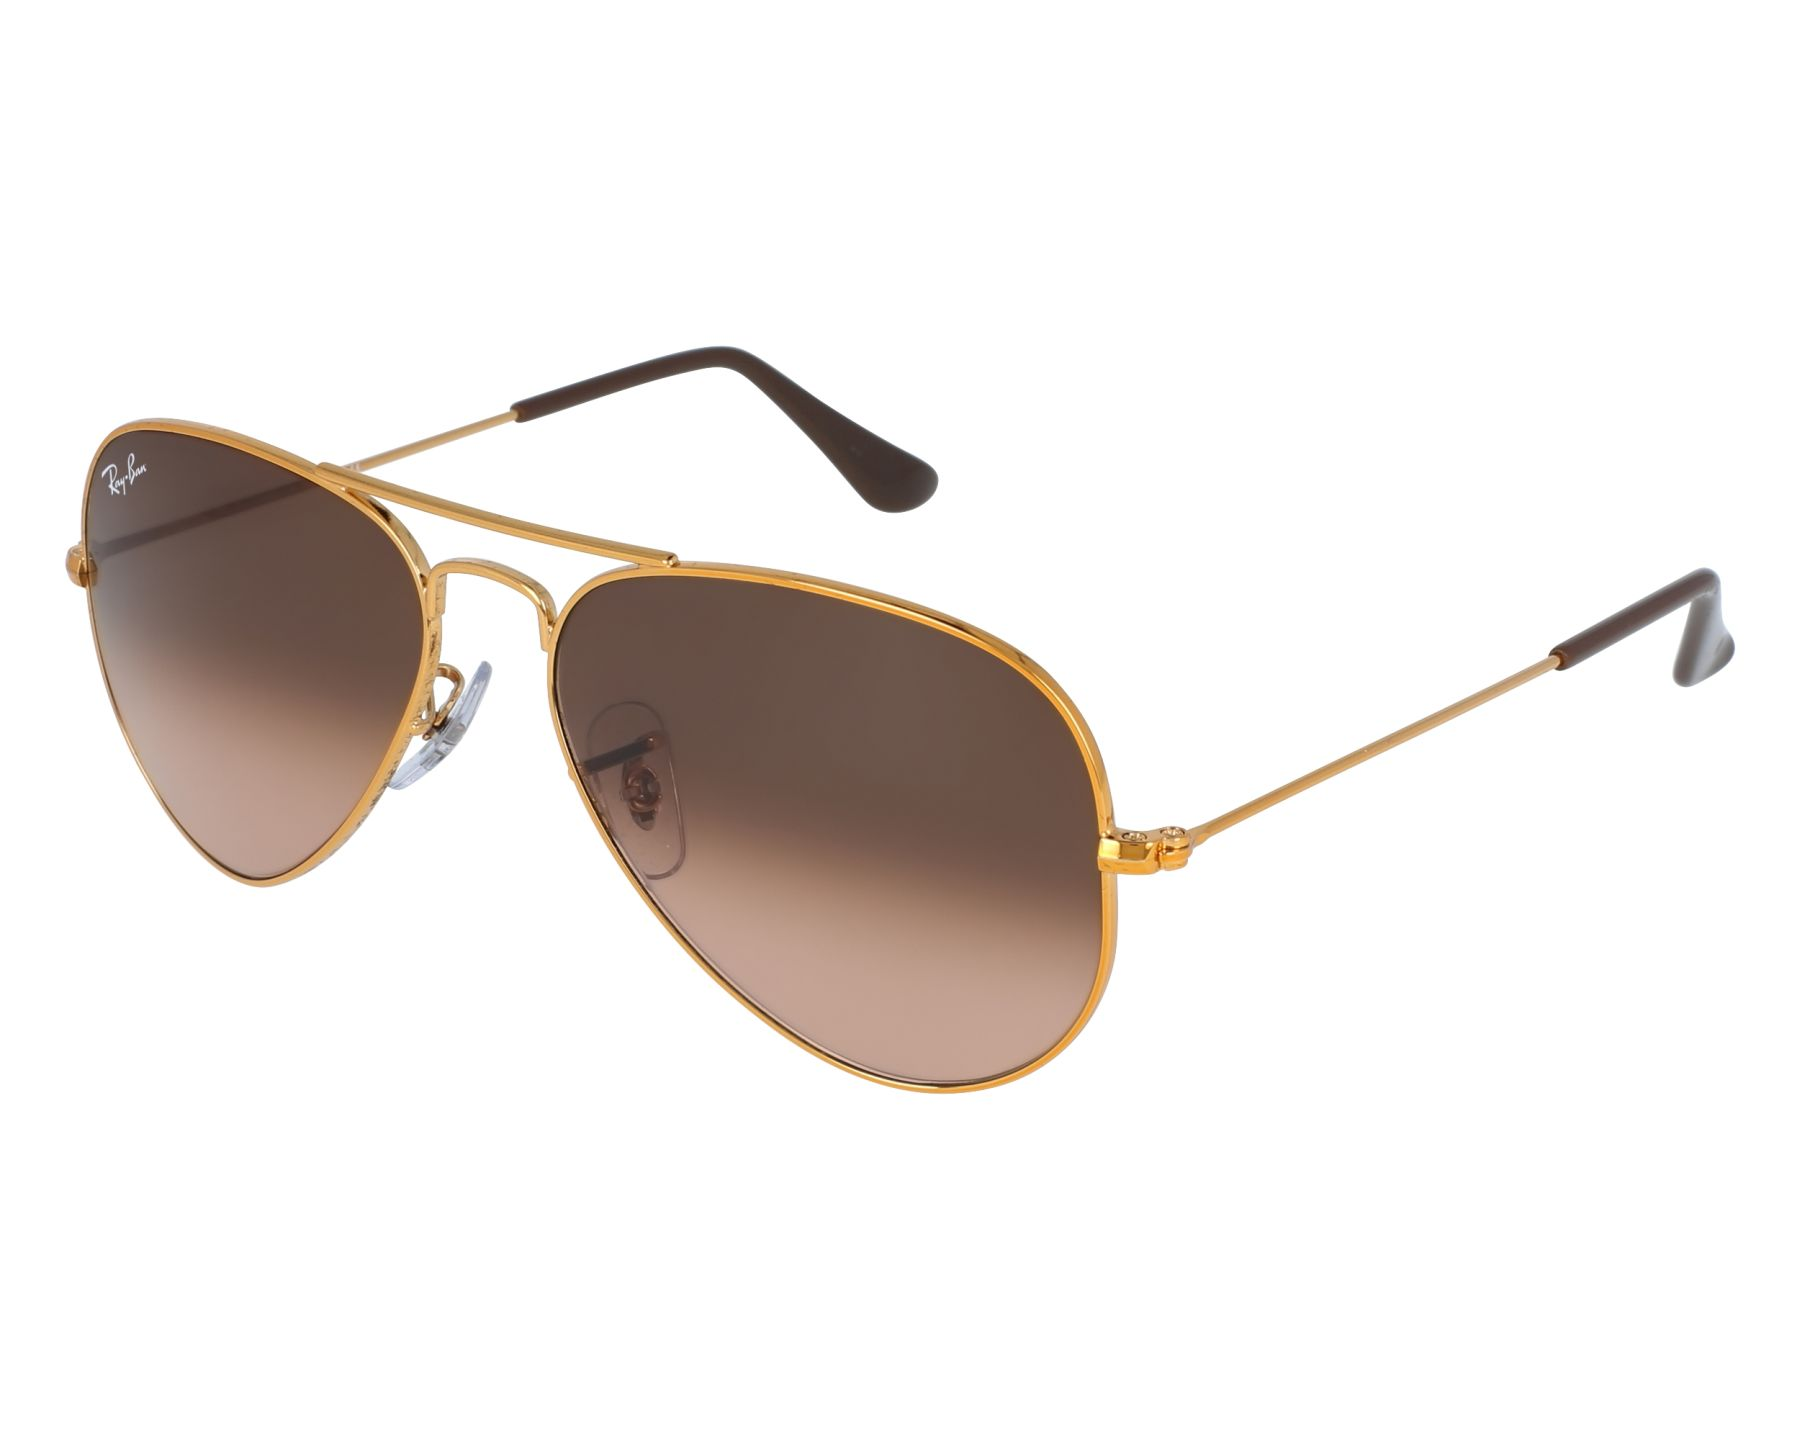 e183c112b1 Sunglasses Ray-Ban RB-3025 9001A5 55-14 Gold front view